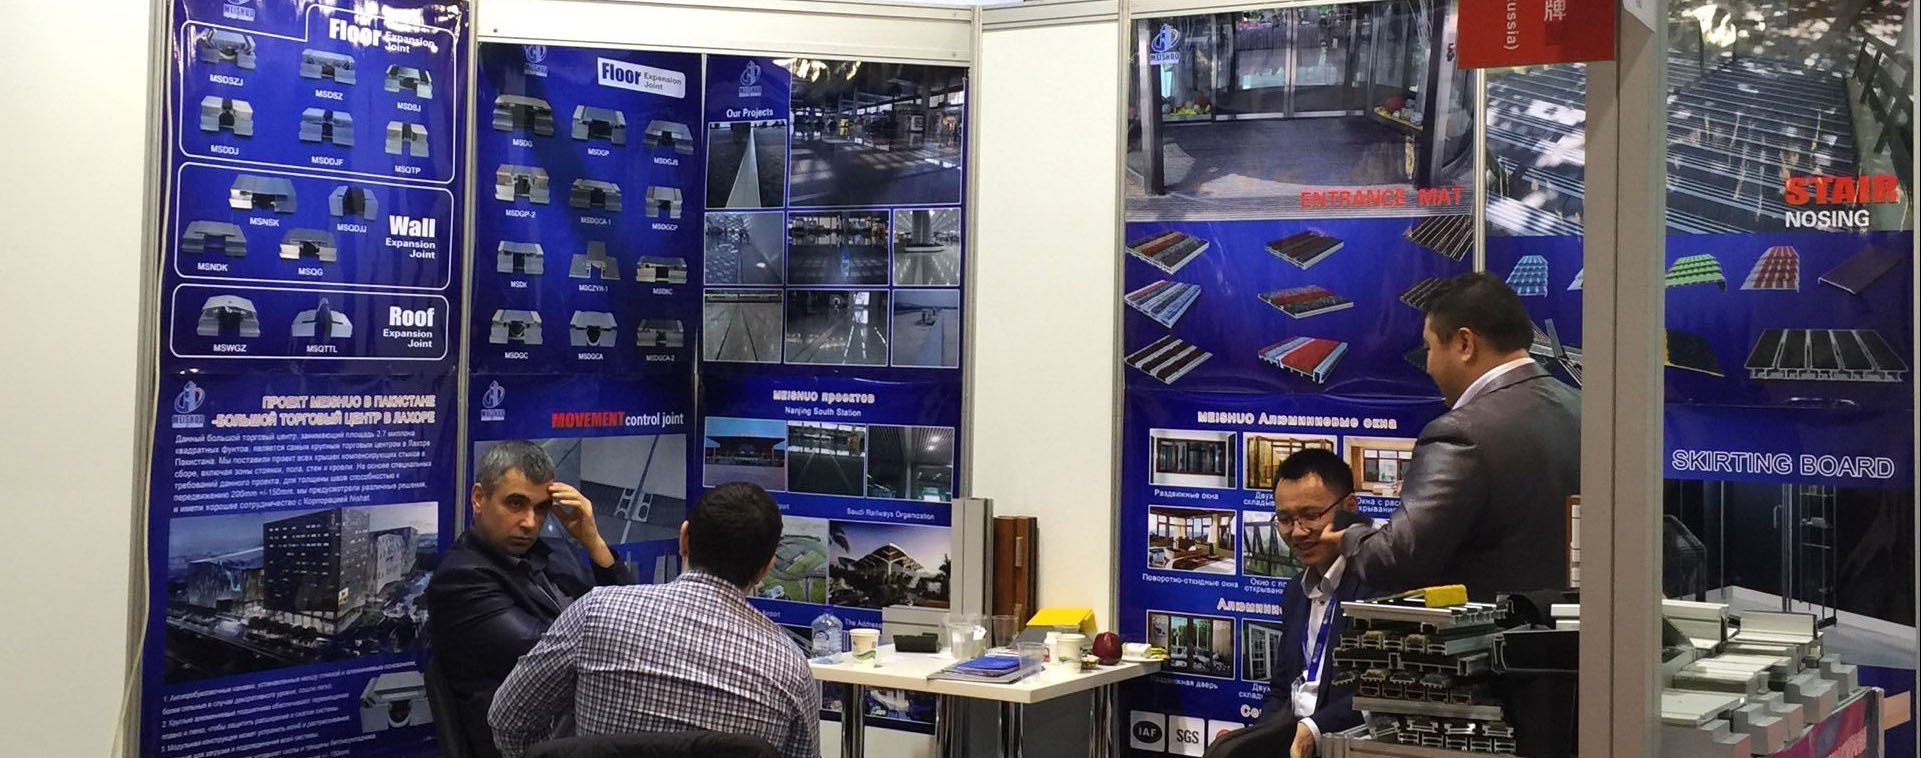 "Congratulations on our success on "" MosBuild 2016. Building & Interiors"" exhibition in Moscow for expansion joint, control joint, entrance mat and stair nosing."